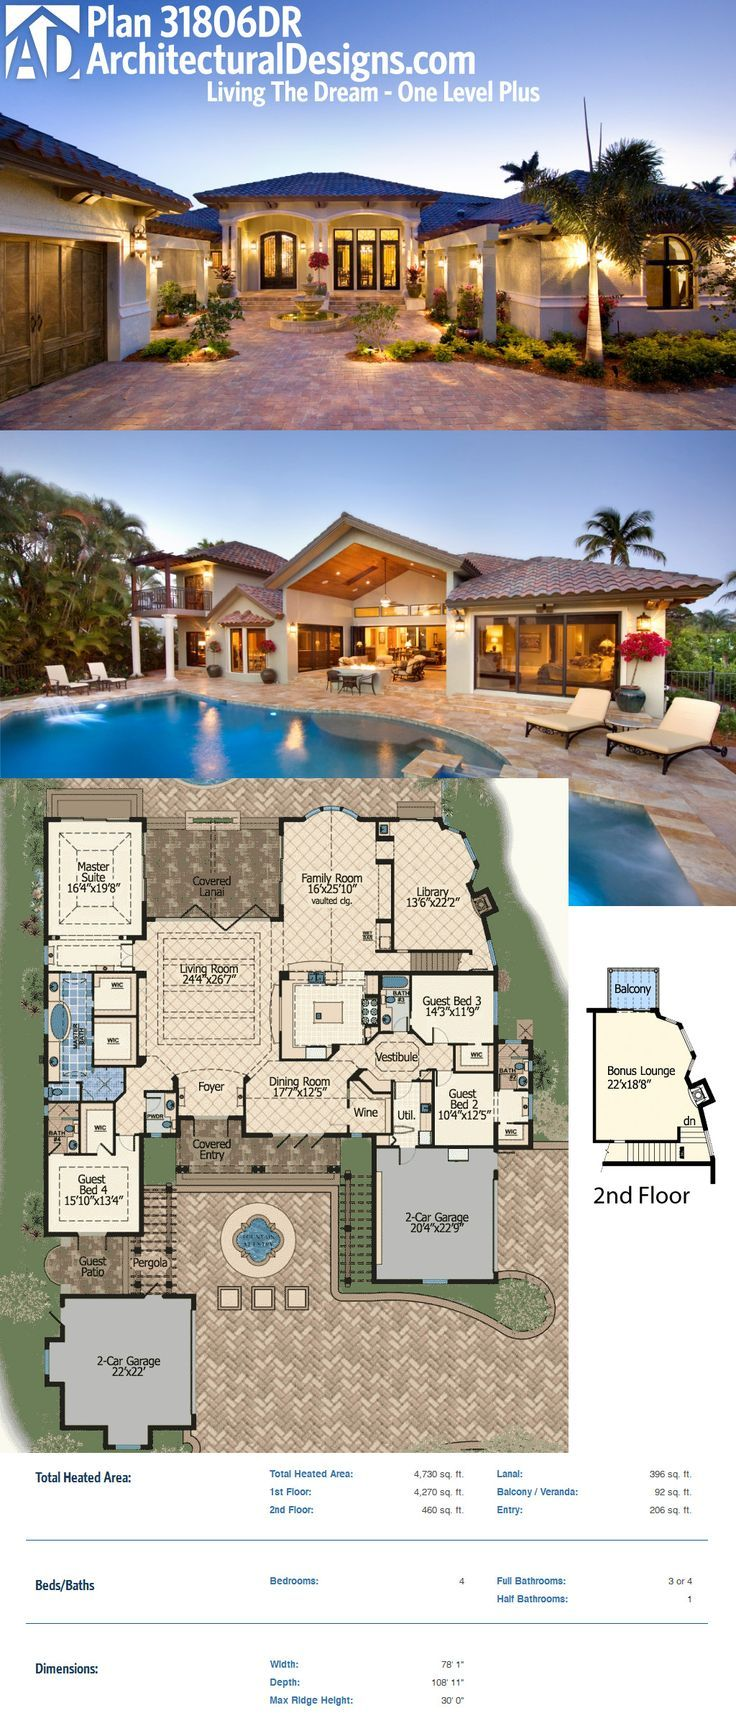 ^ 1000+ images about Dream house on Pinterest